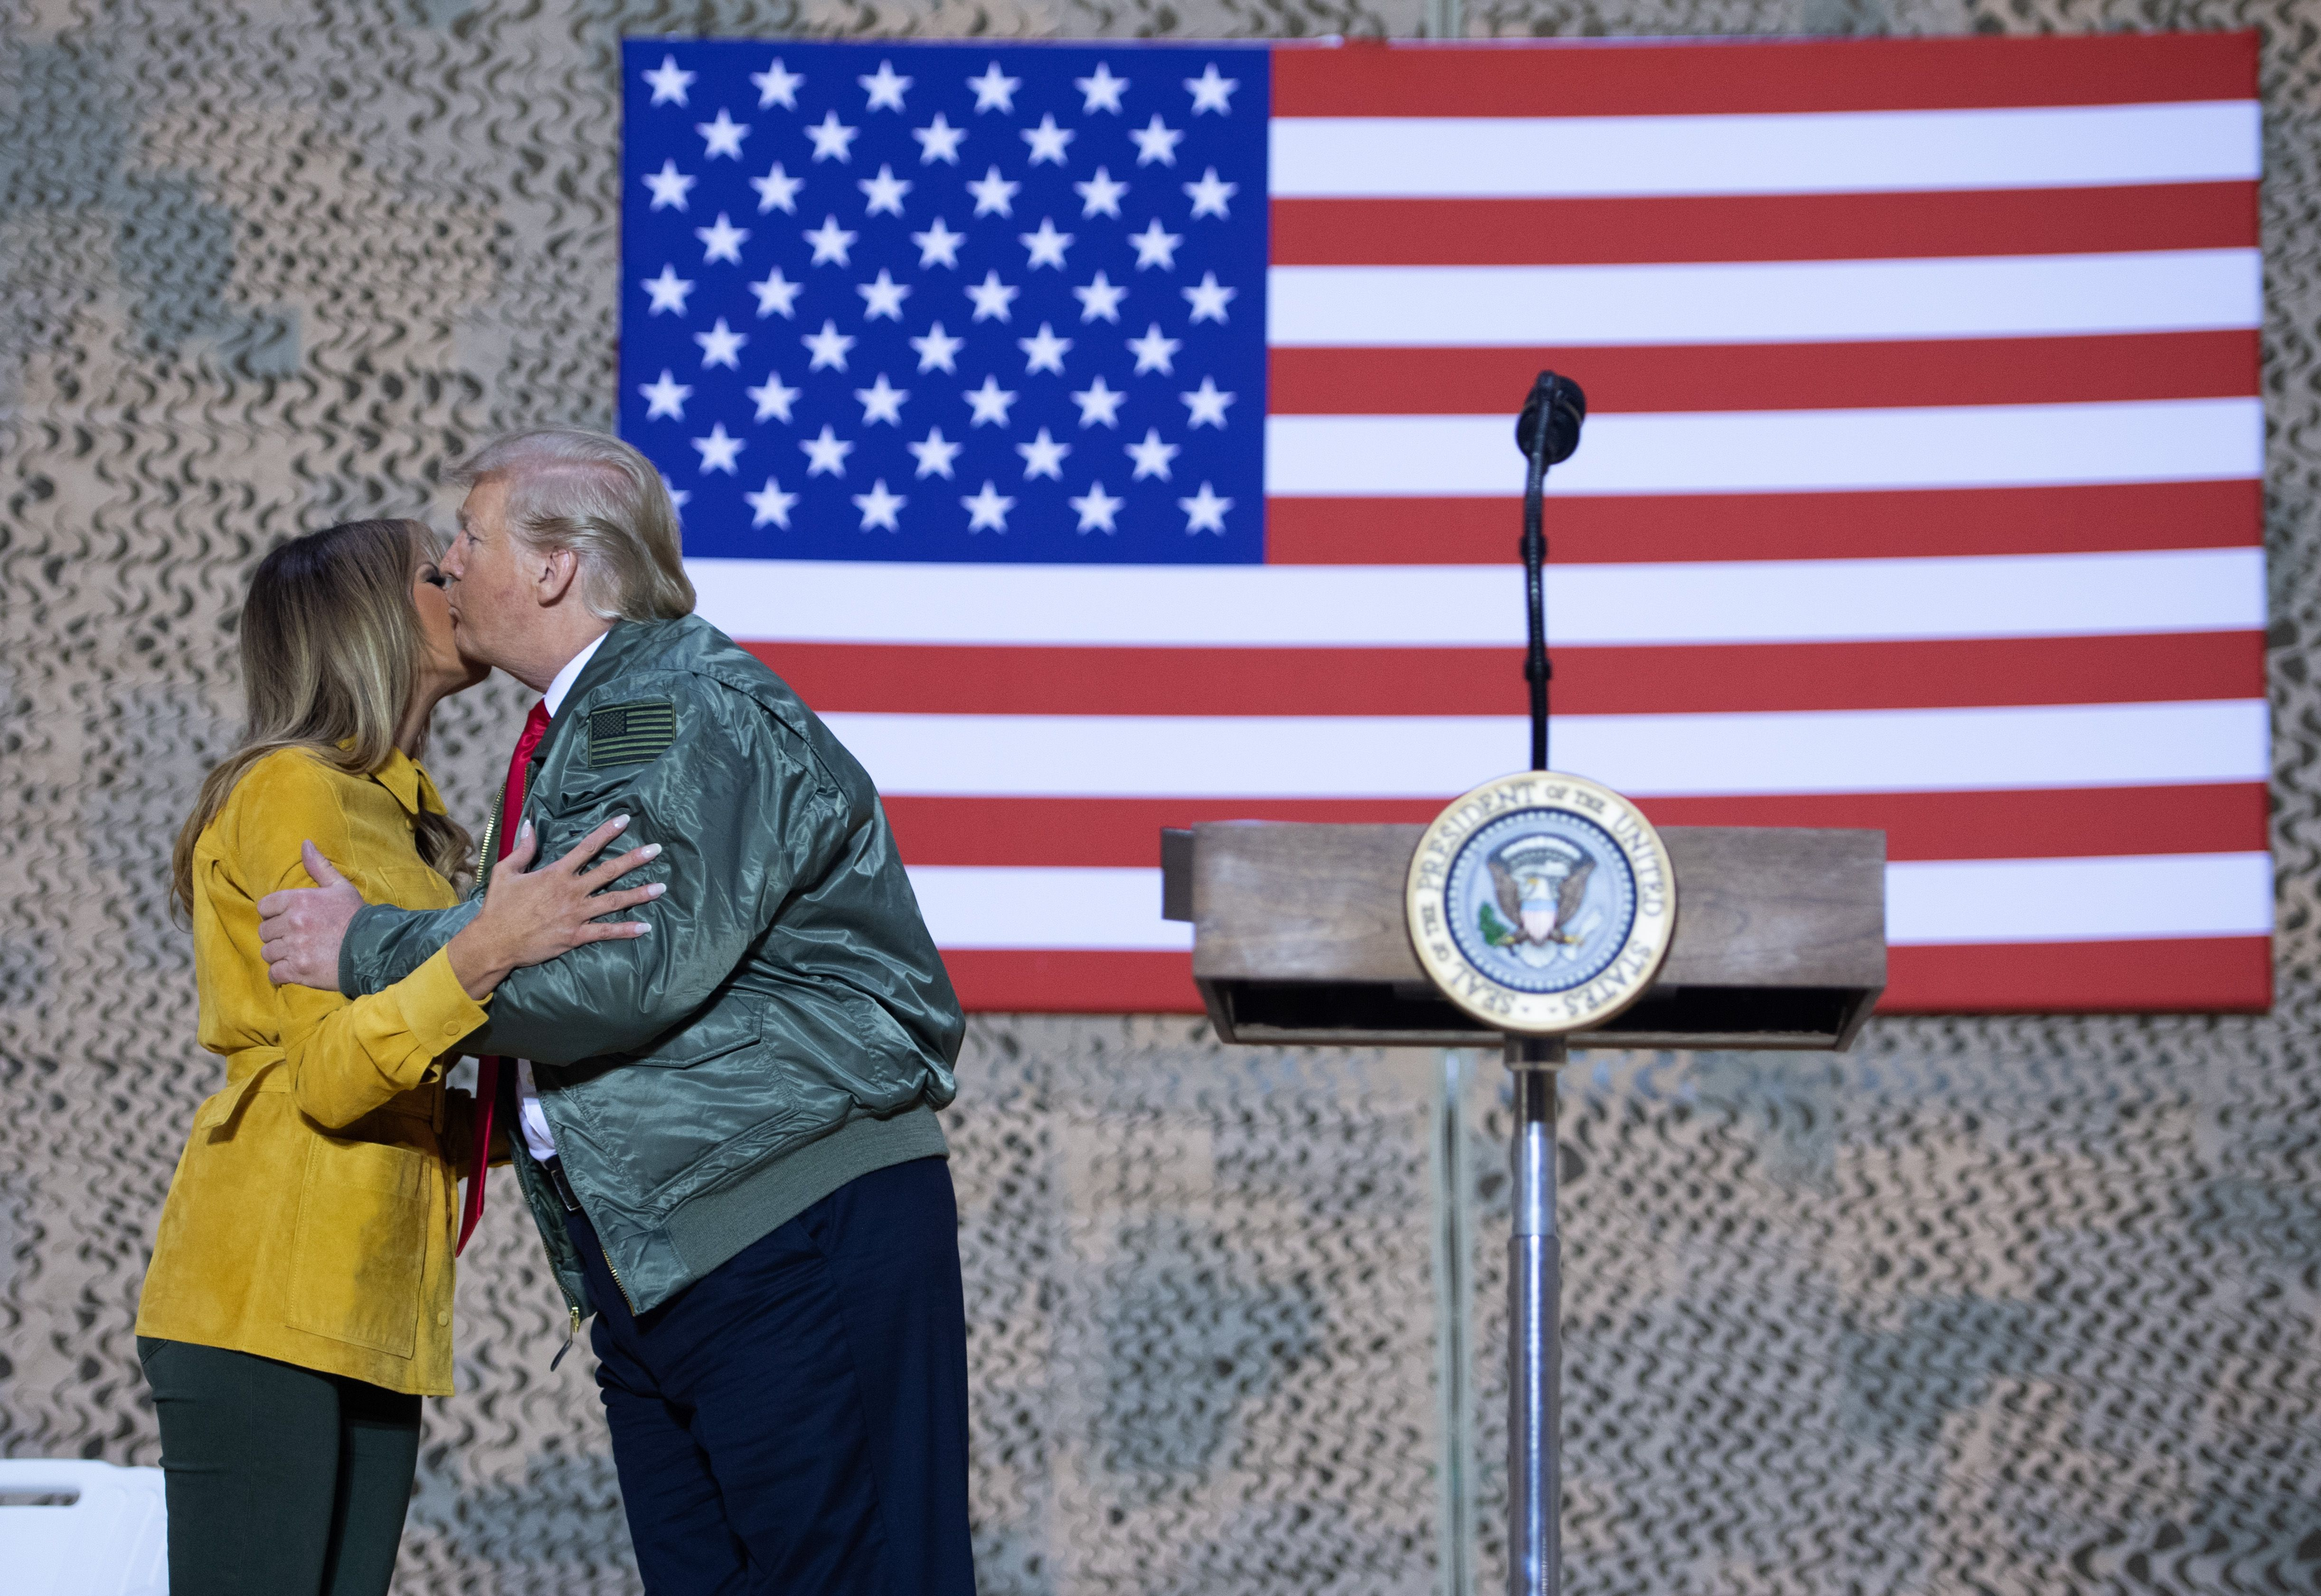 US President Donald Trump kisses First Lady Melania Trump as he speaks to members of the US military during an unannounced trip to Al Asad Air Base in Iraq, December 26, 2018. - President Donald Trump arrived in Iraq on his first visit to US troops deployed in a war zone since his election two years ago (Photo by SAUL LOEB / AFP)